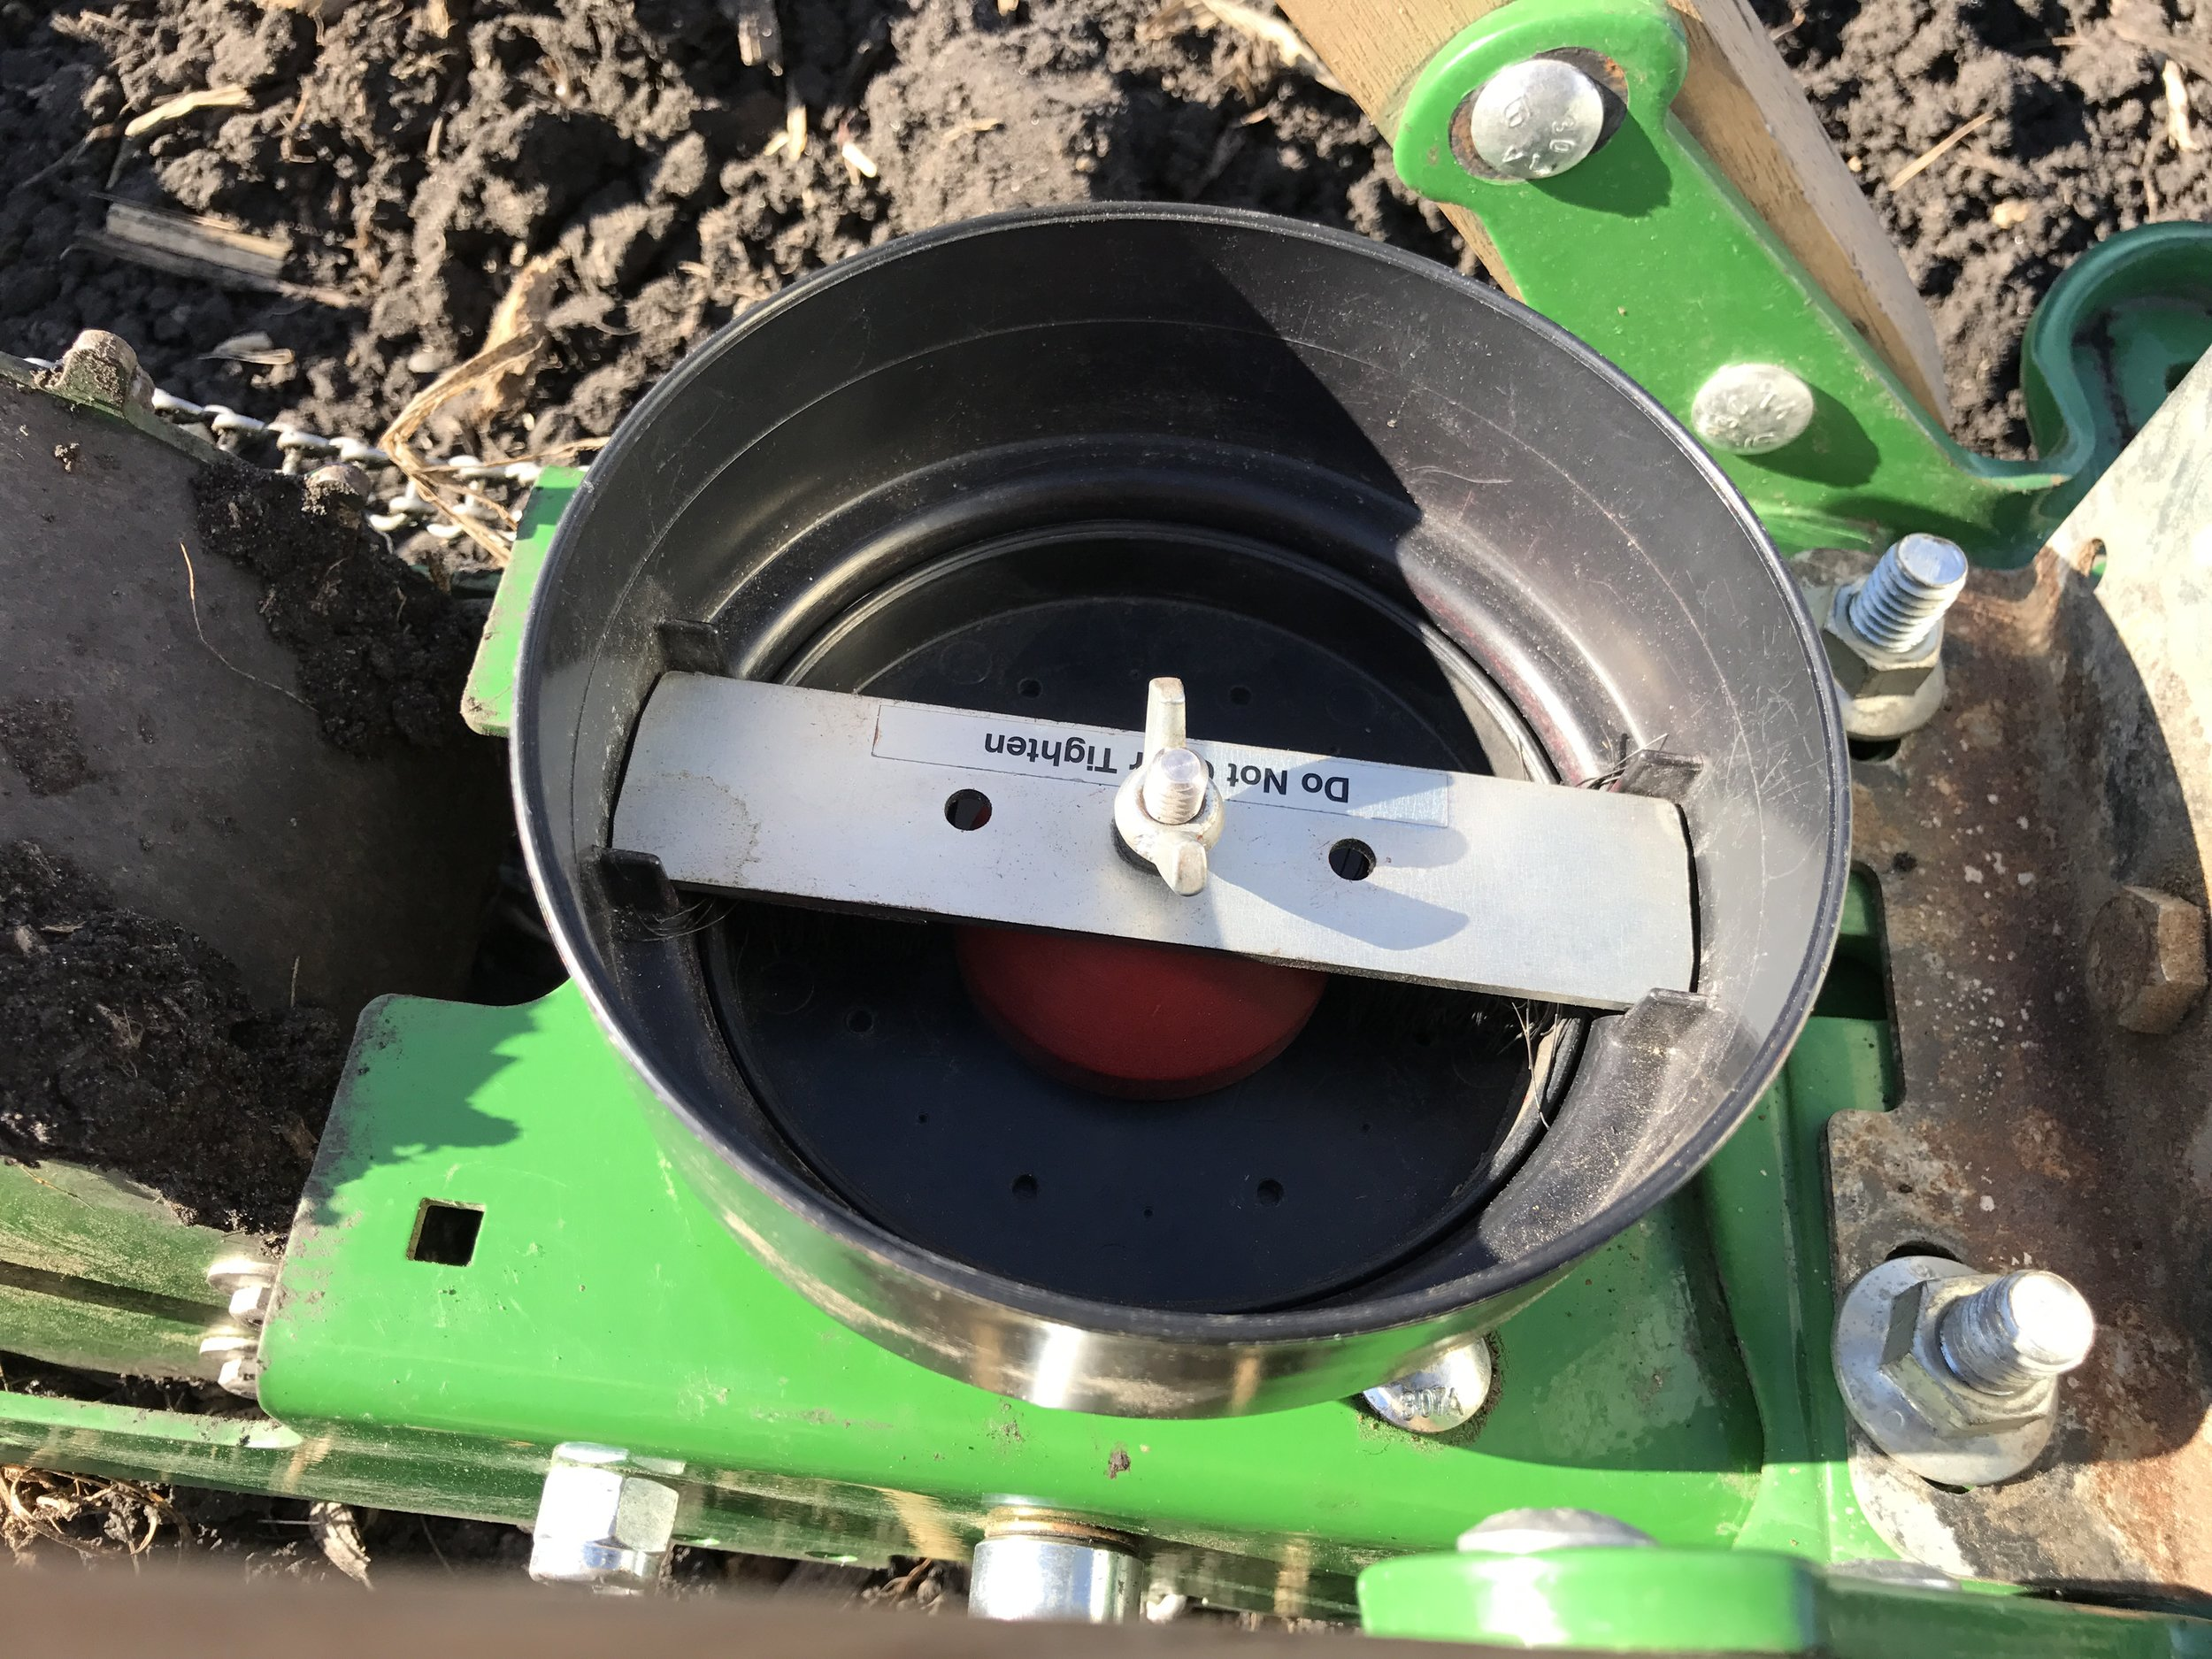 This is our garden seeder without seed. If you look closely you can see holes in the seed plate which will receive seed, space them accordingly, and drop them into their row.